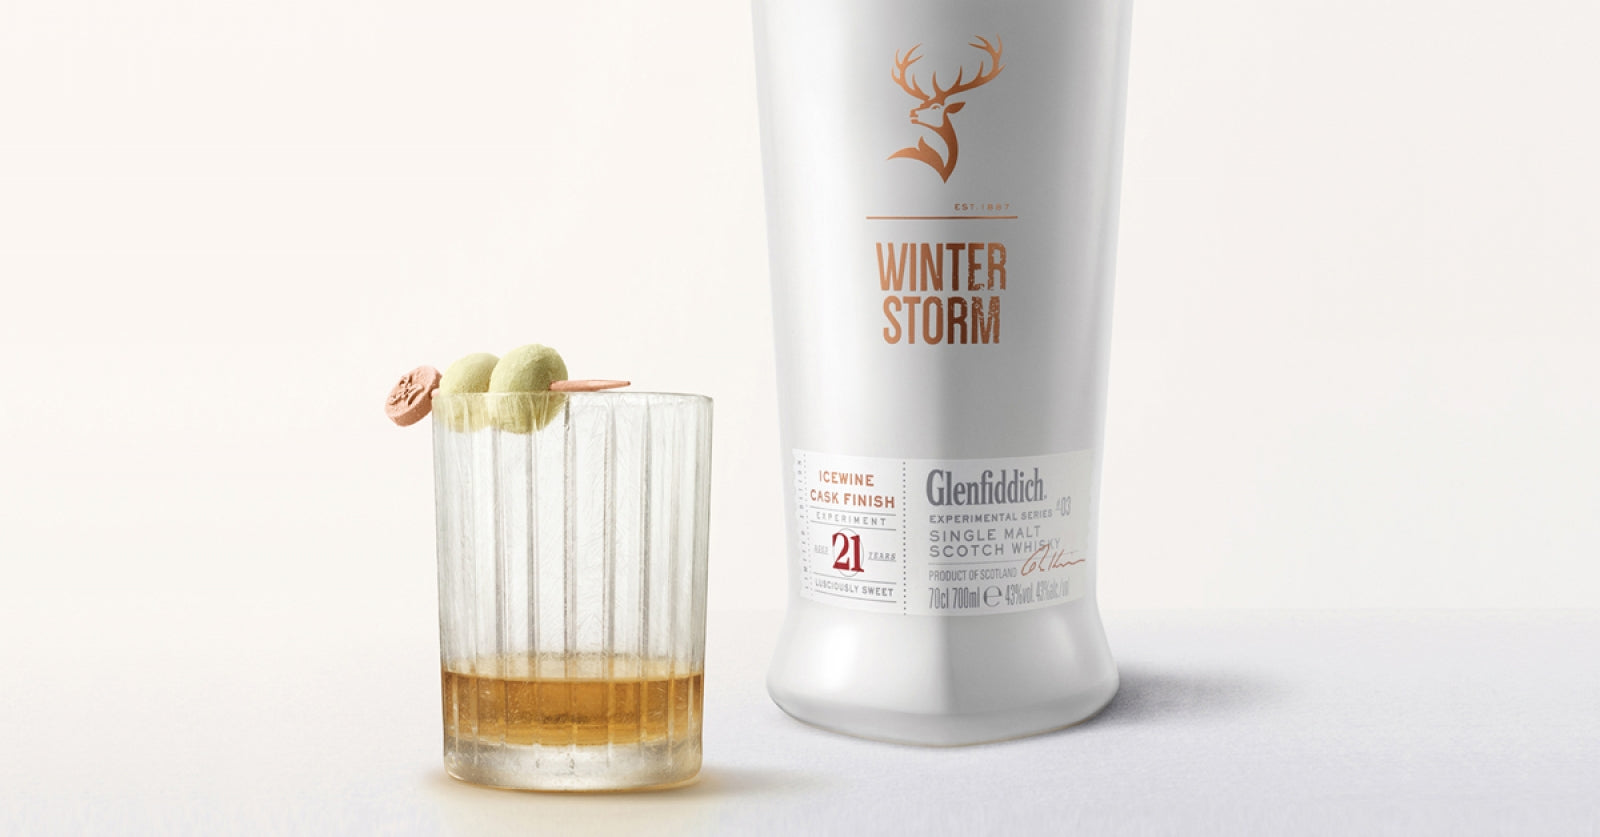 A bottle of Scotch Whisky from Glenfiddich known as Winter Storm